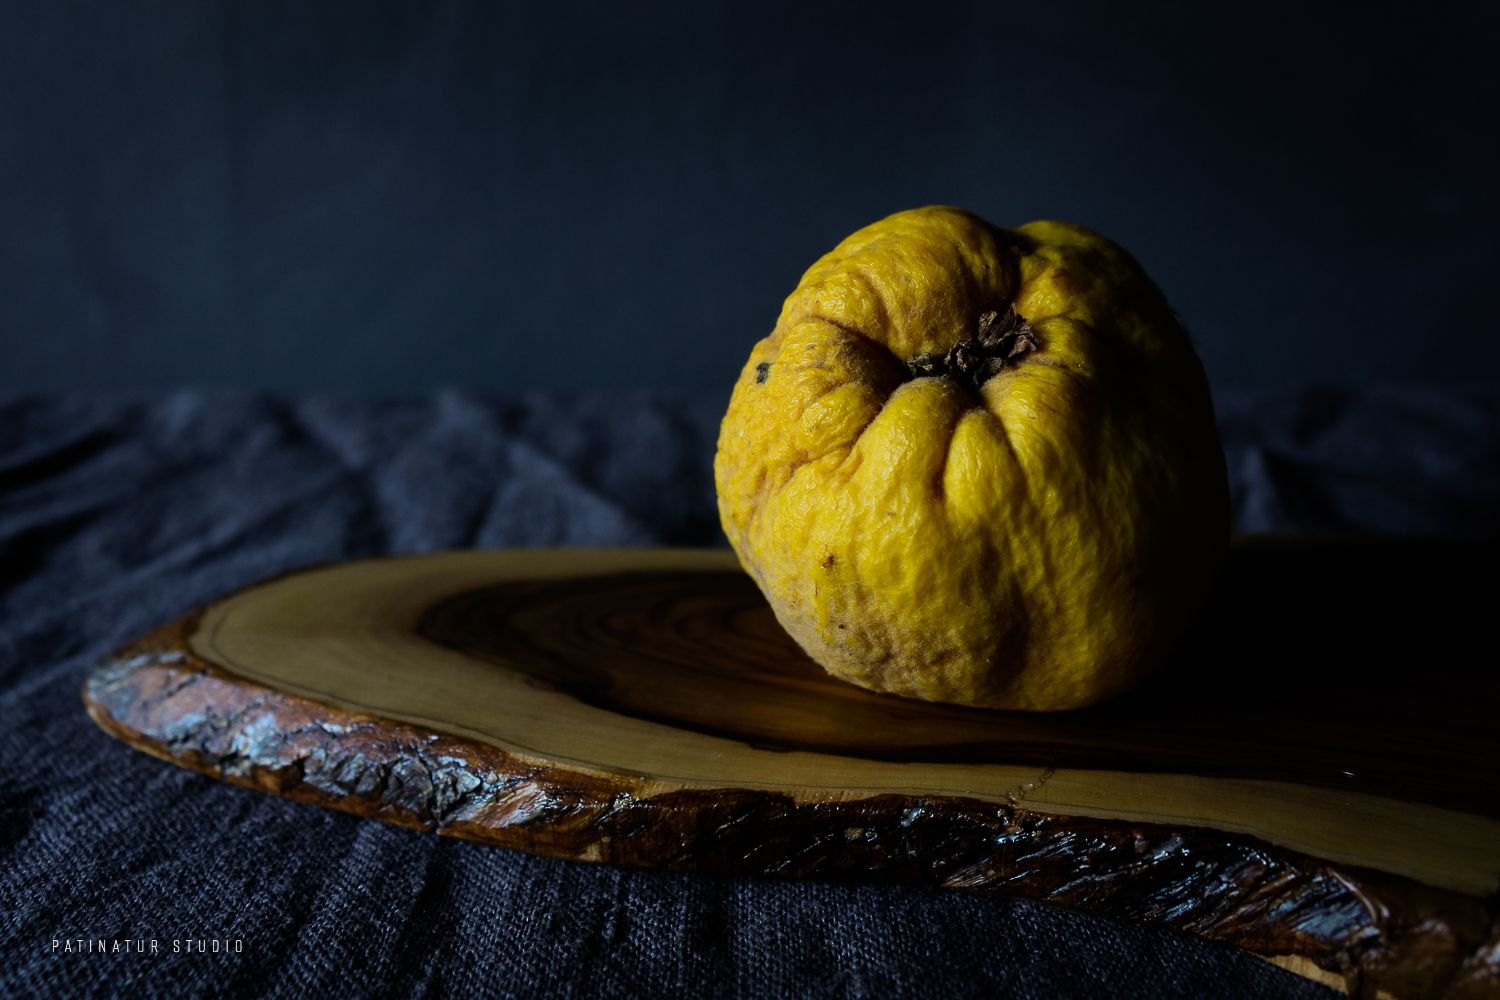 Dark And Moody Food Still Life Photo With Quince Inspired By 17th Century Old Master Painters Like Them I Use Chiaroscuro Lighting Working Only With Natural I 2020